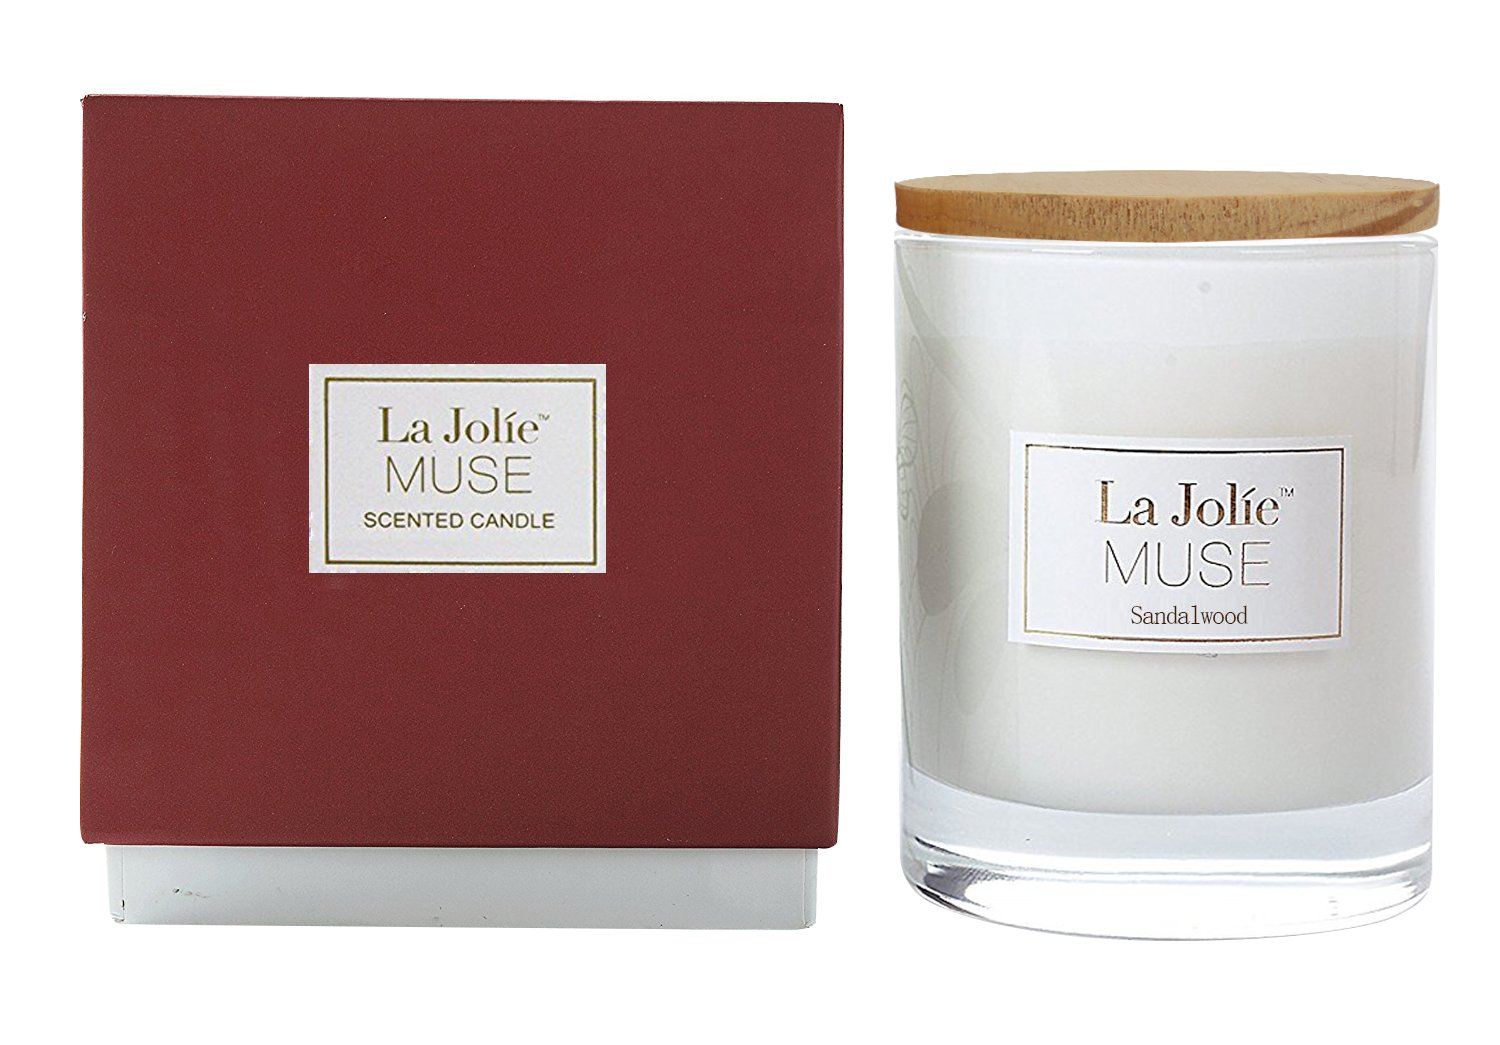 LA JOLIE MUSE Wood Wick Soy Candles Sandalwood Scented Glass Jar Candle, 45 Hours Burning, Gift by LA JOLIE MUSE (Image #1)